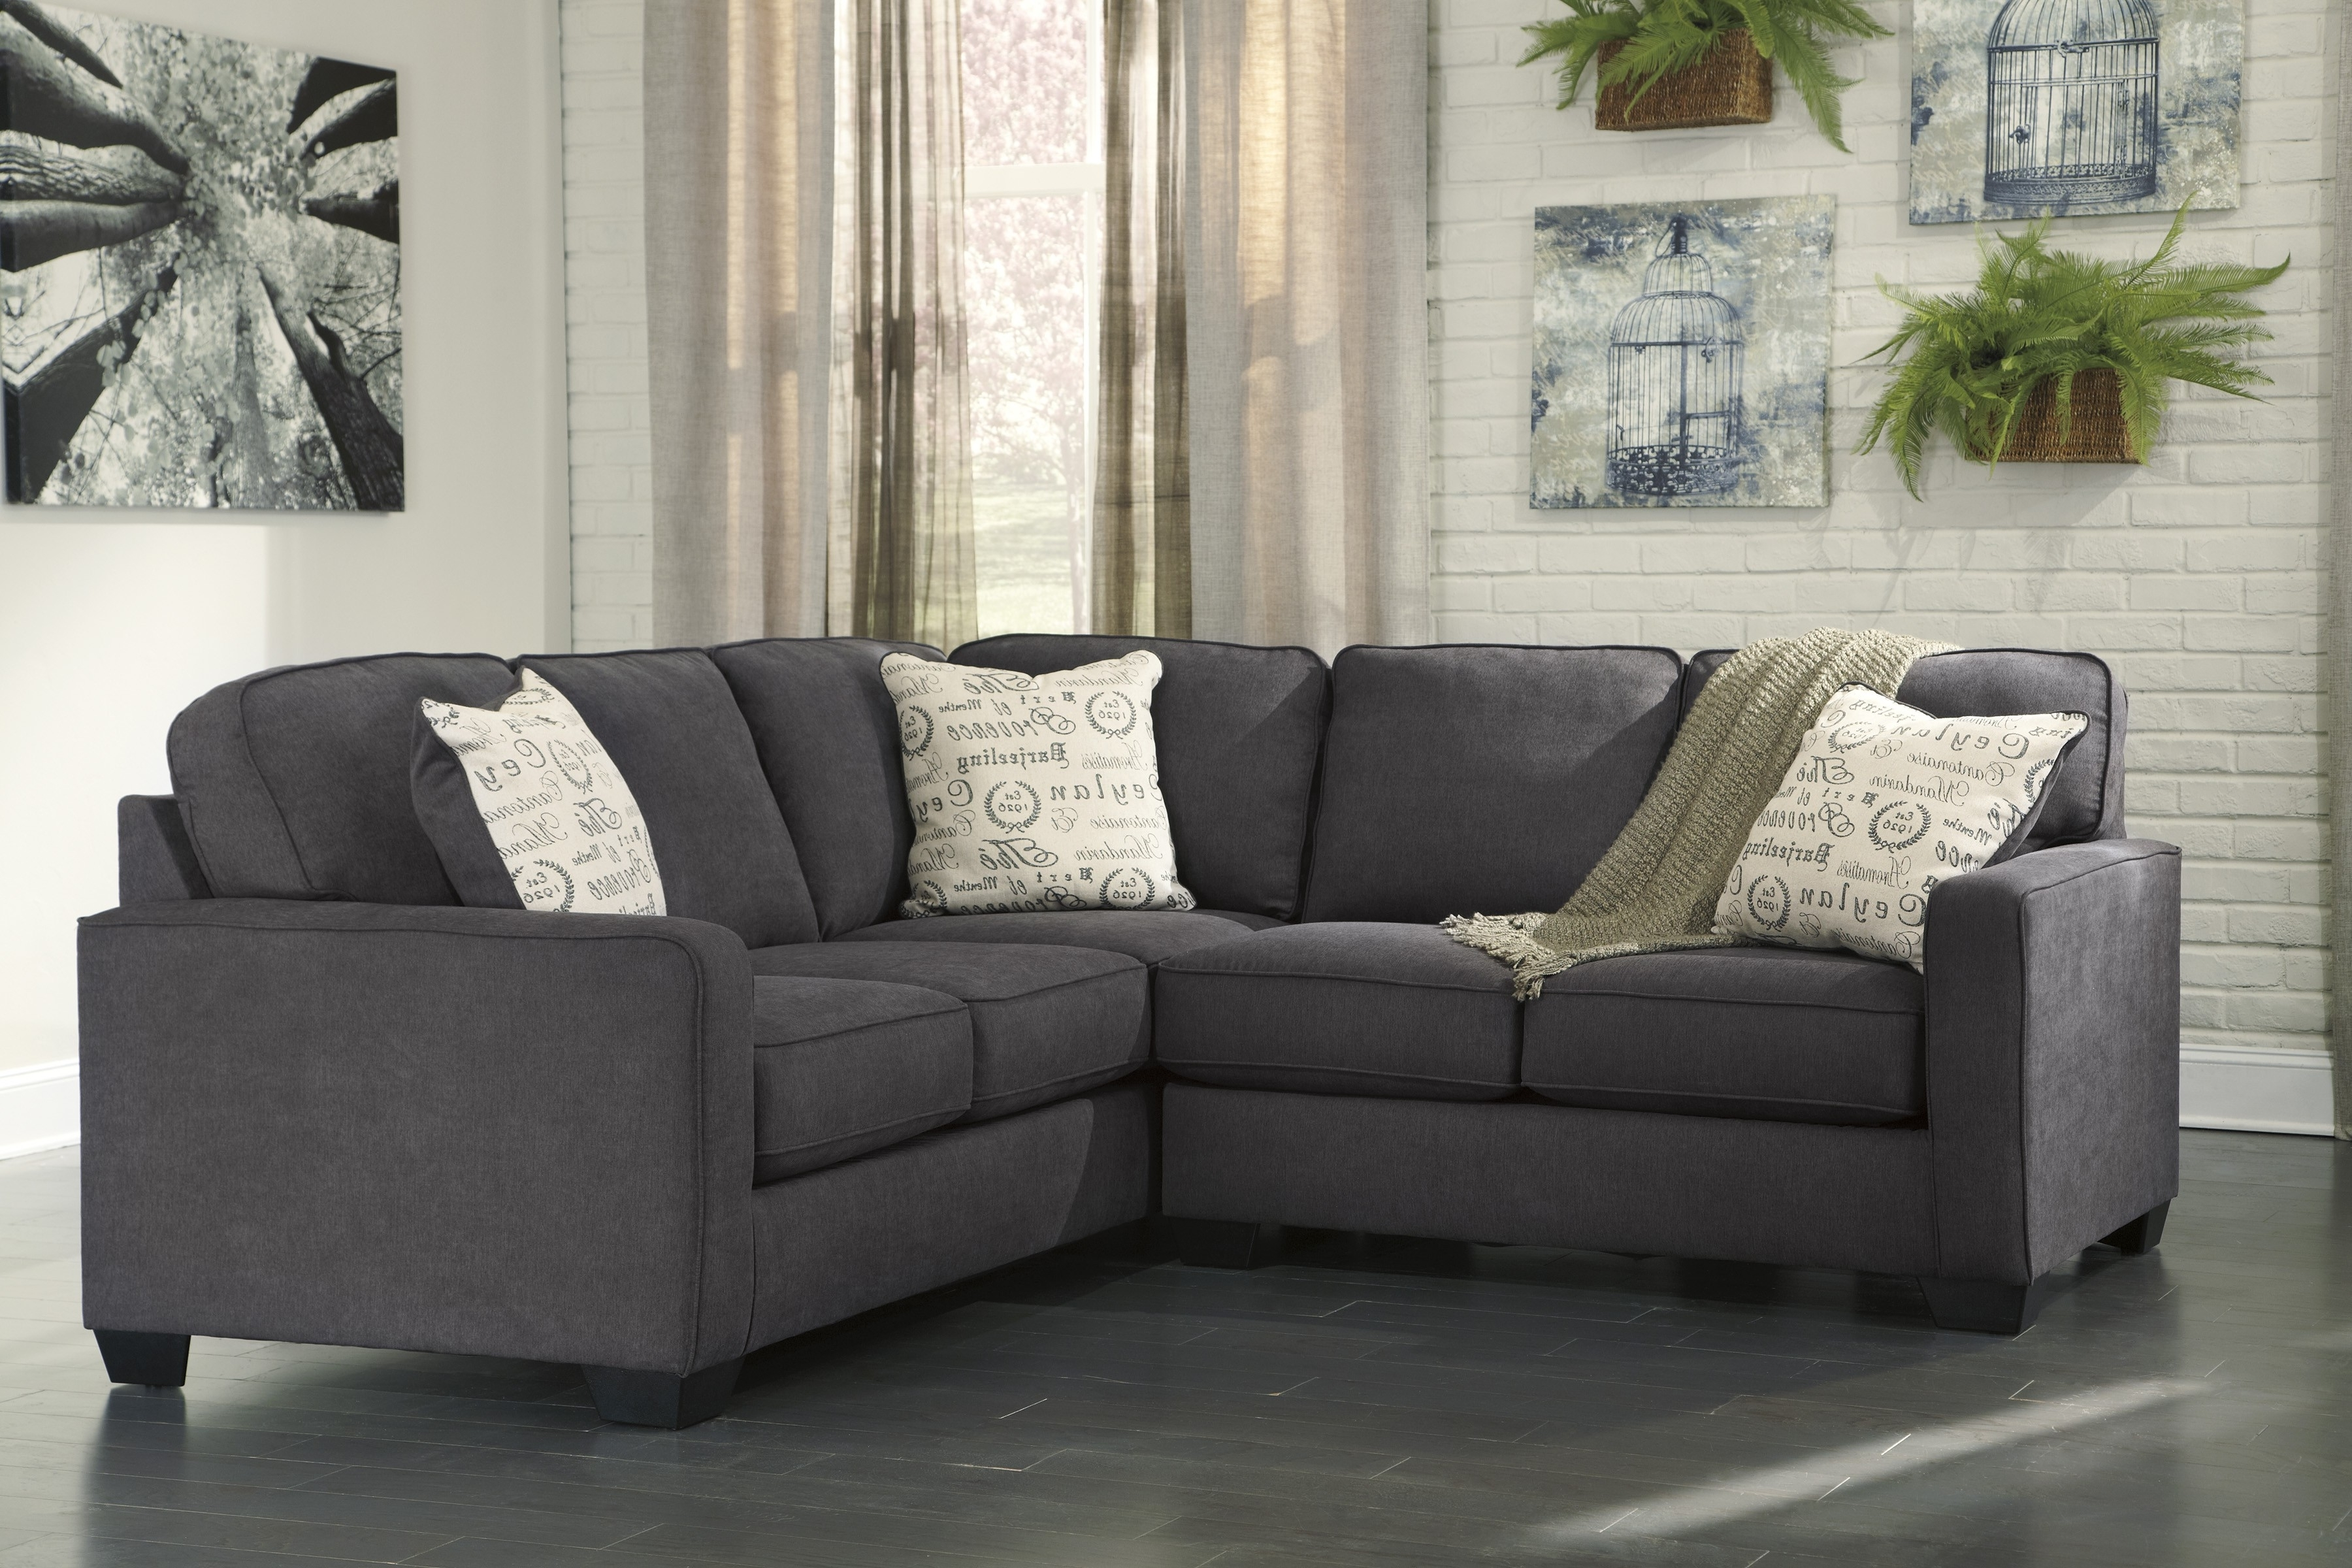 Sectional Sofas That Come In Pieces With Regard To Most Popular Alenya Charcoal 2 Piece Sectional Sofa For $ (View 9 of 20)